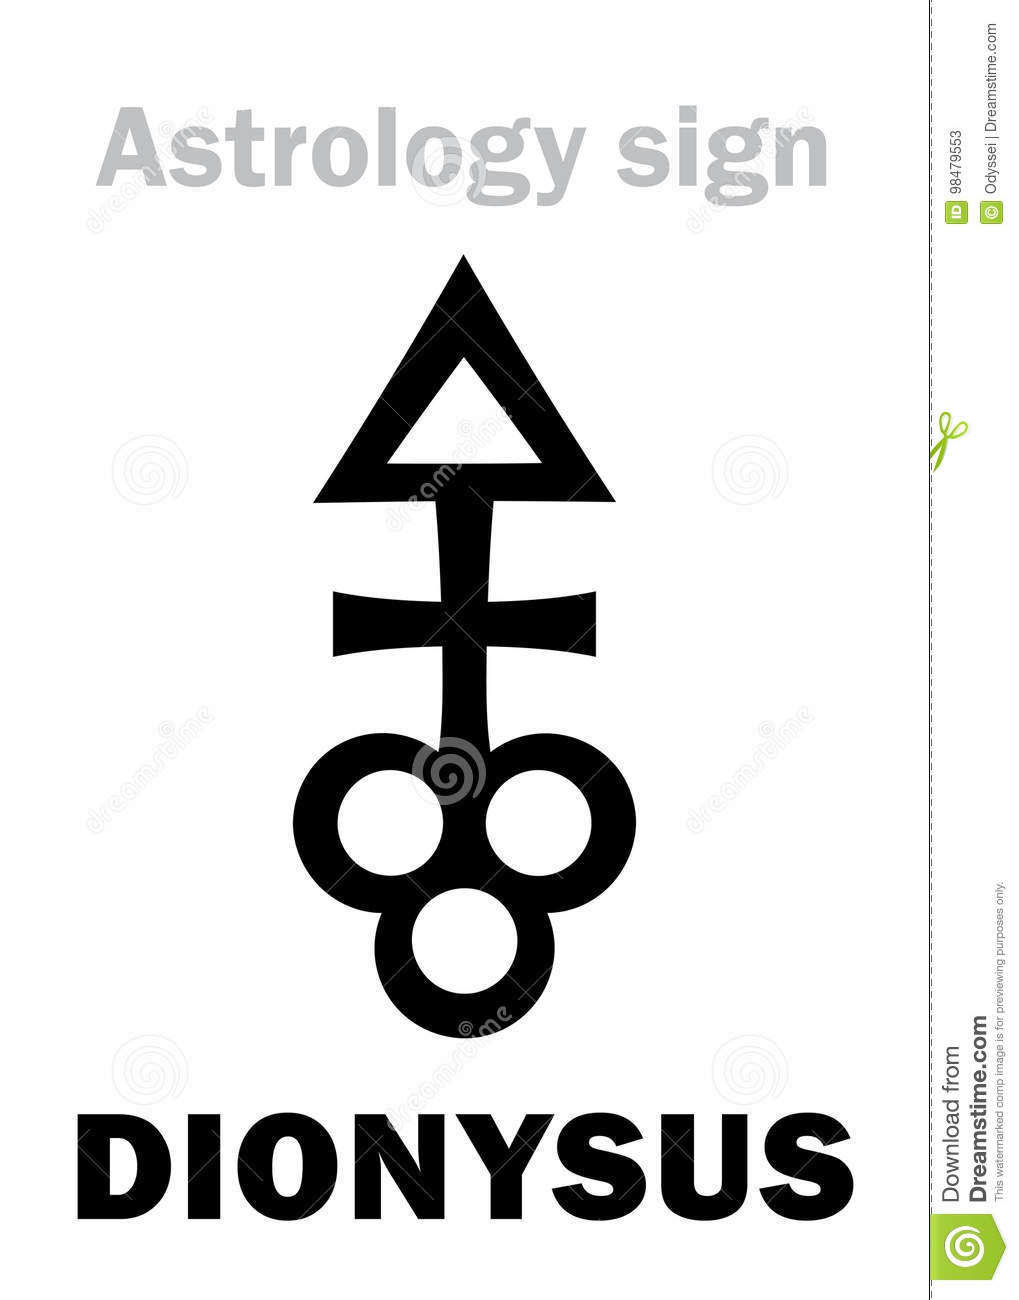 Astrology: Asteroid DIONYSUS Stock Vector - Illustration of